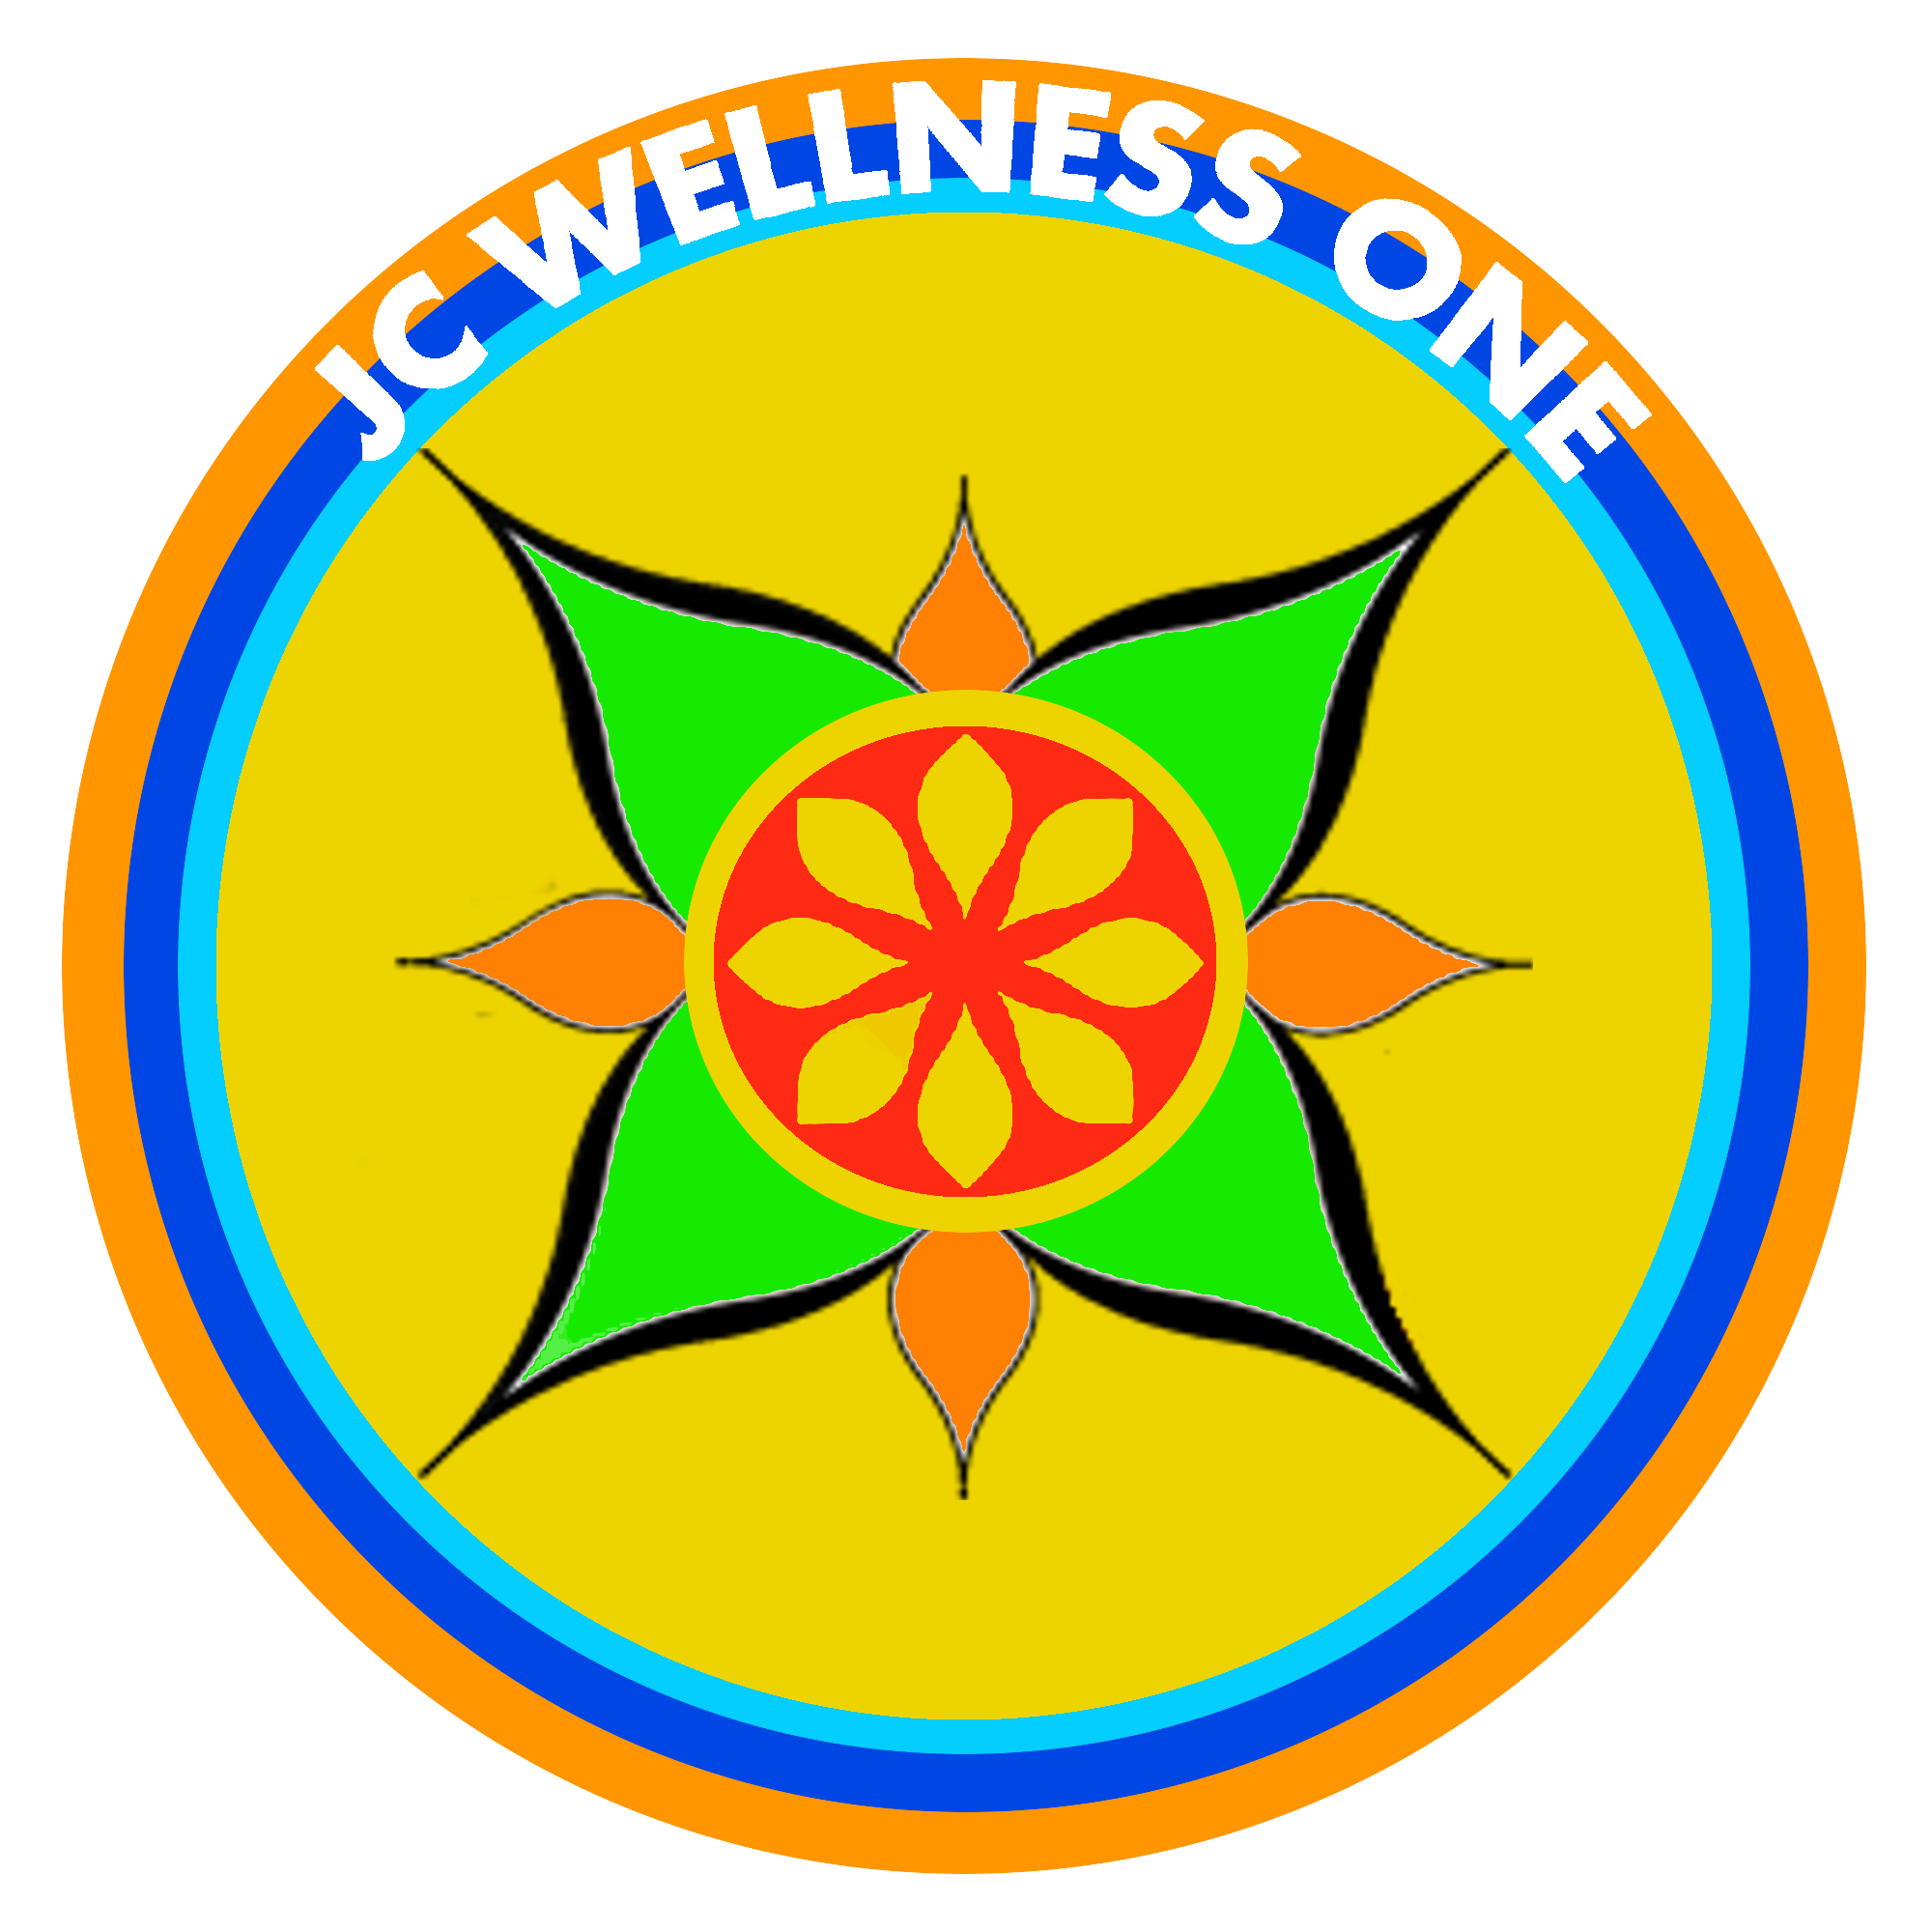 JC Wellness One Logo